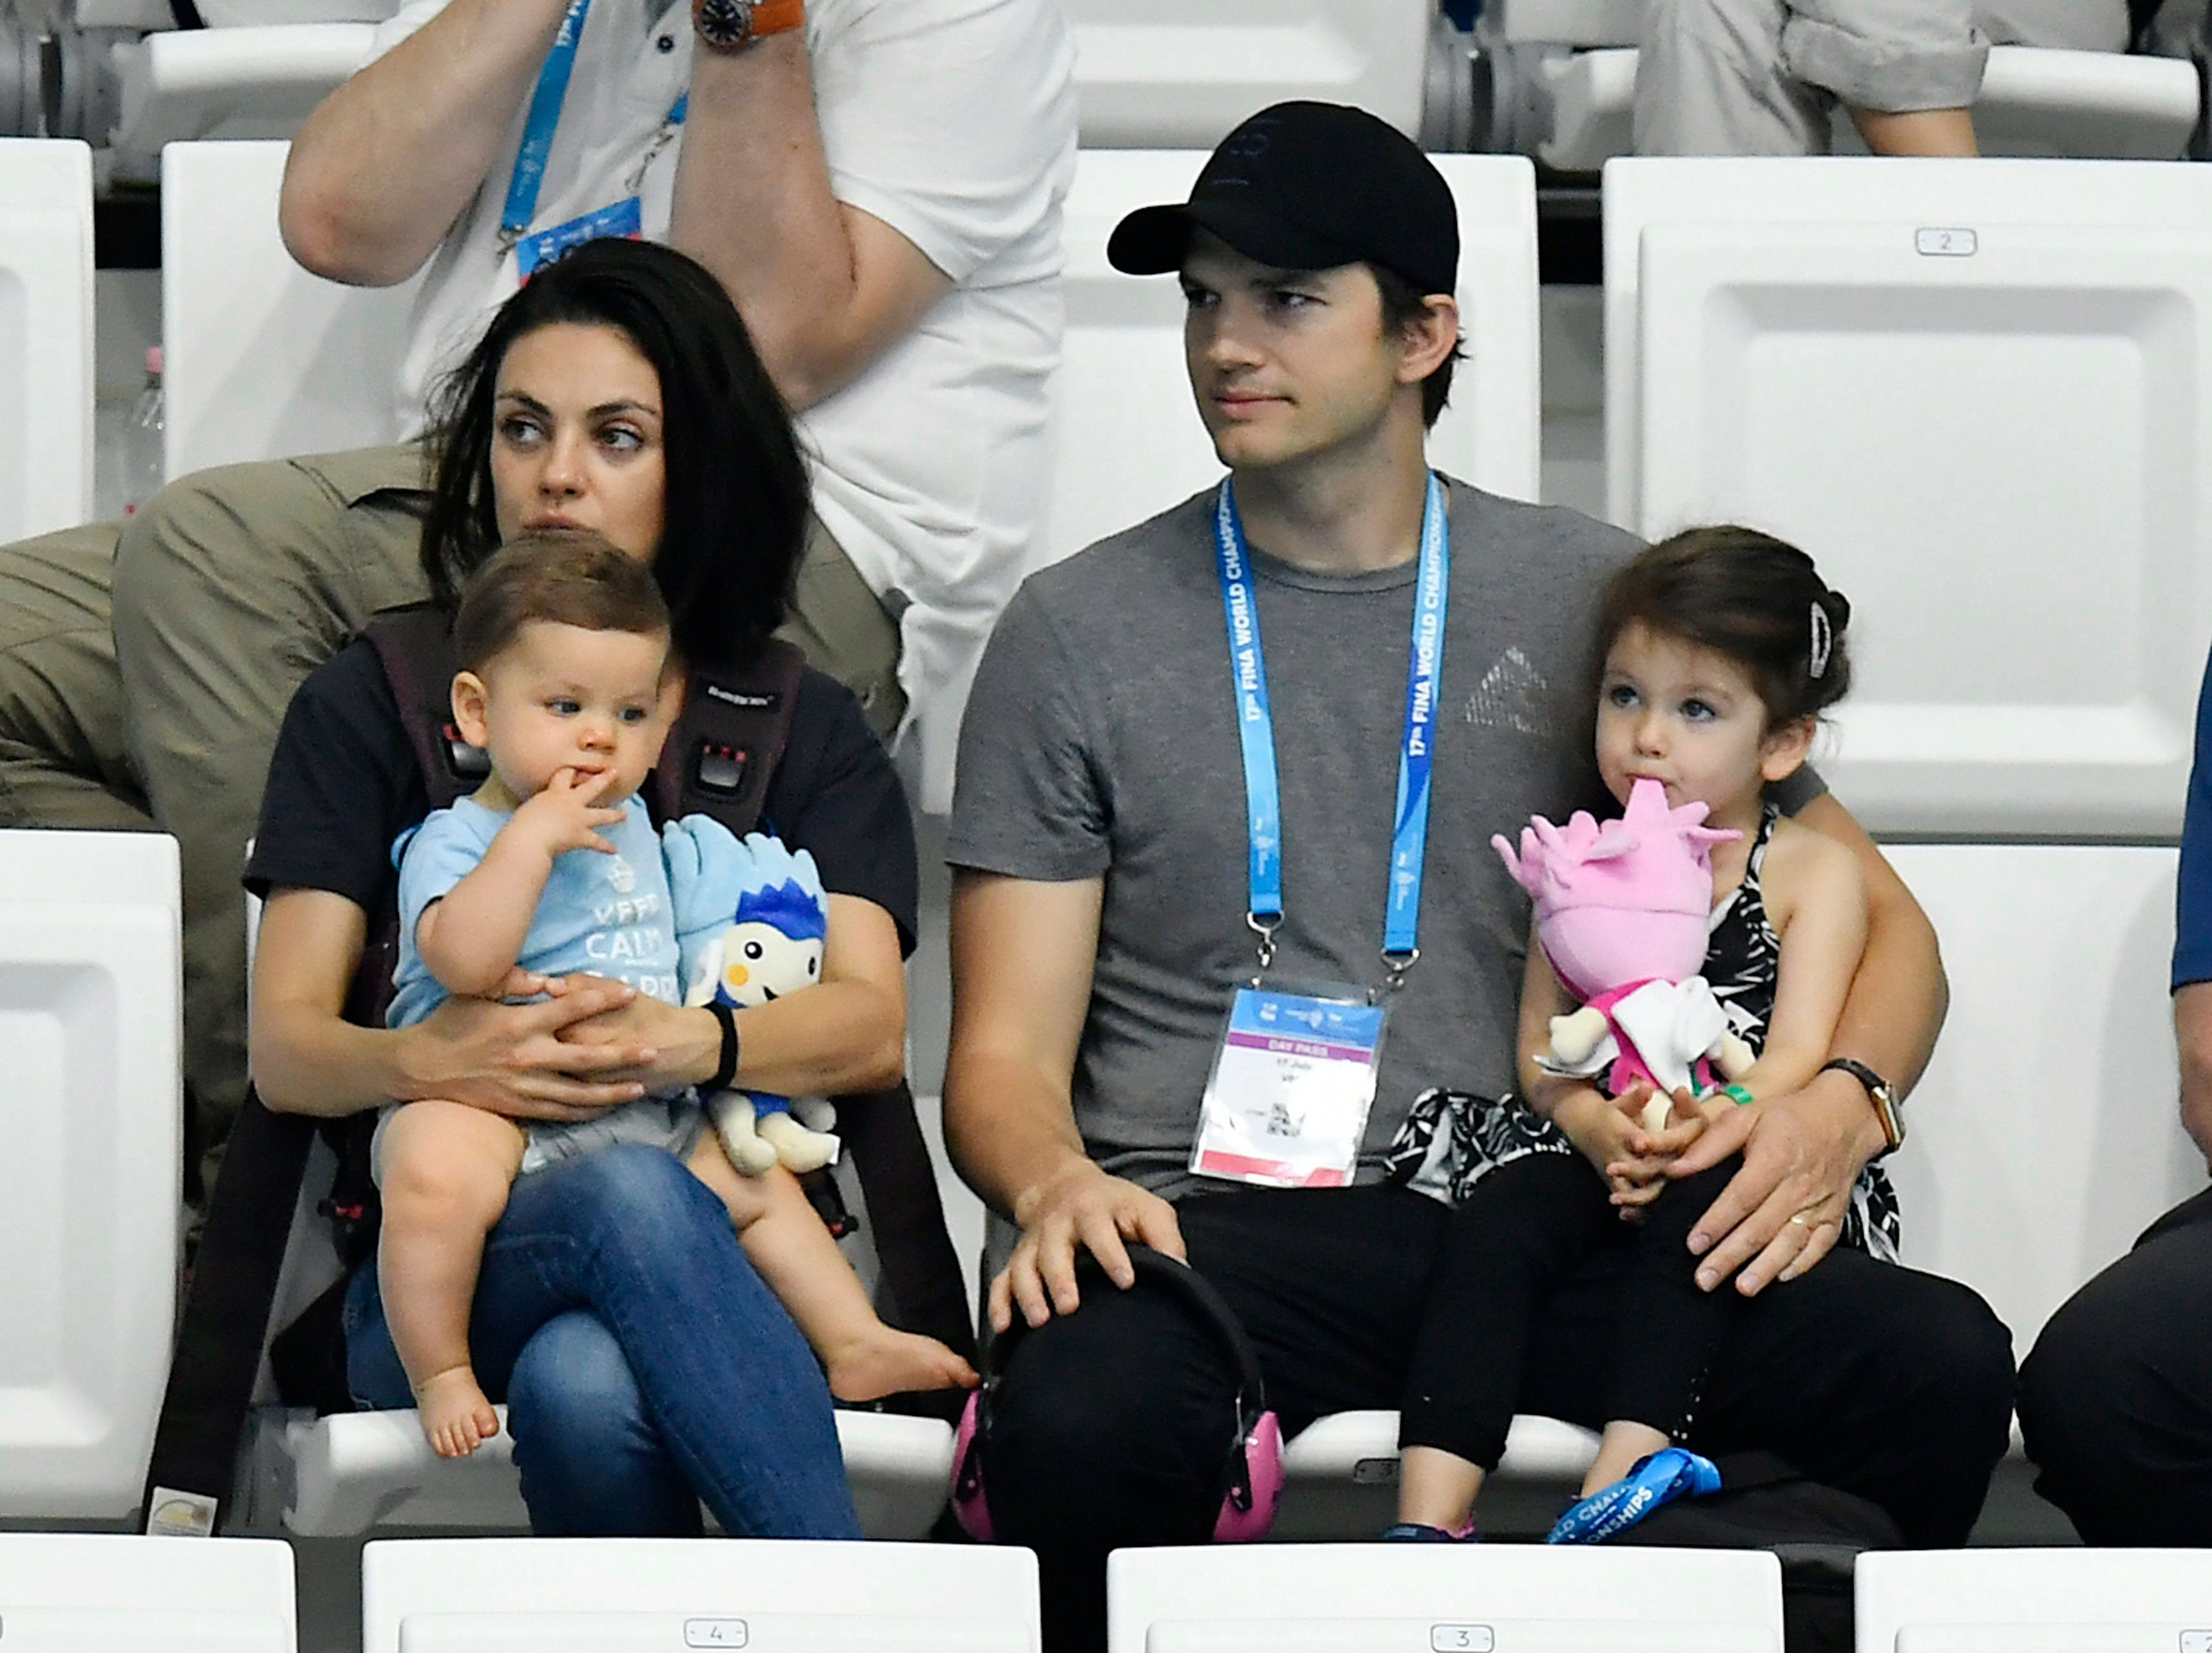 Ashton and Mila with their children